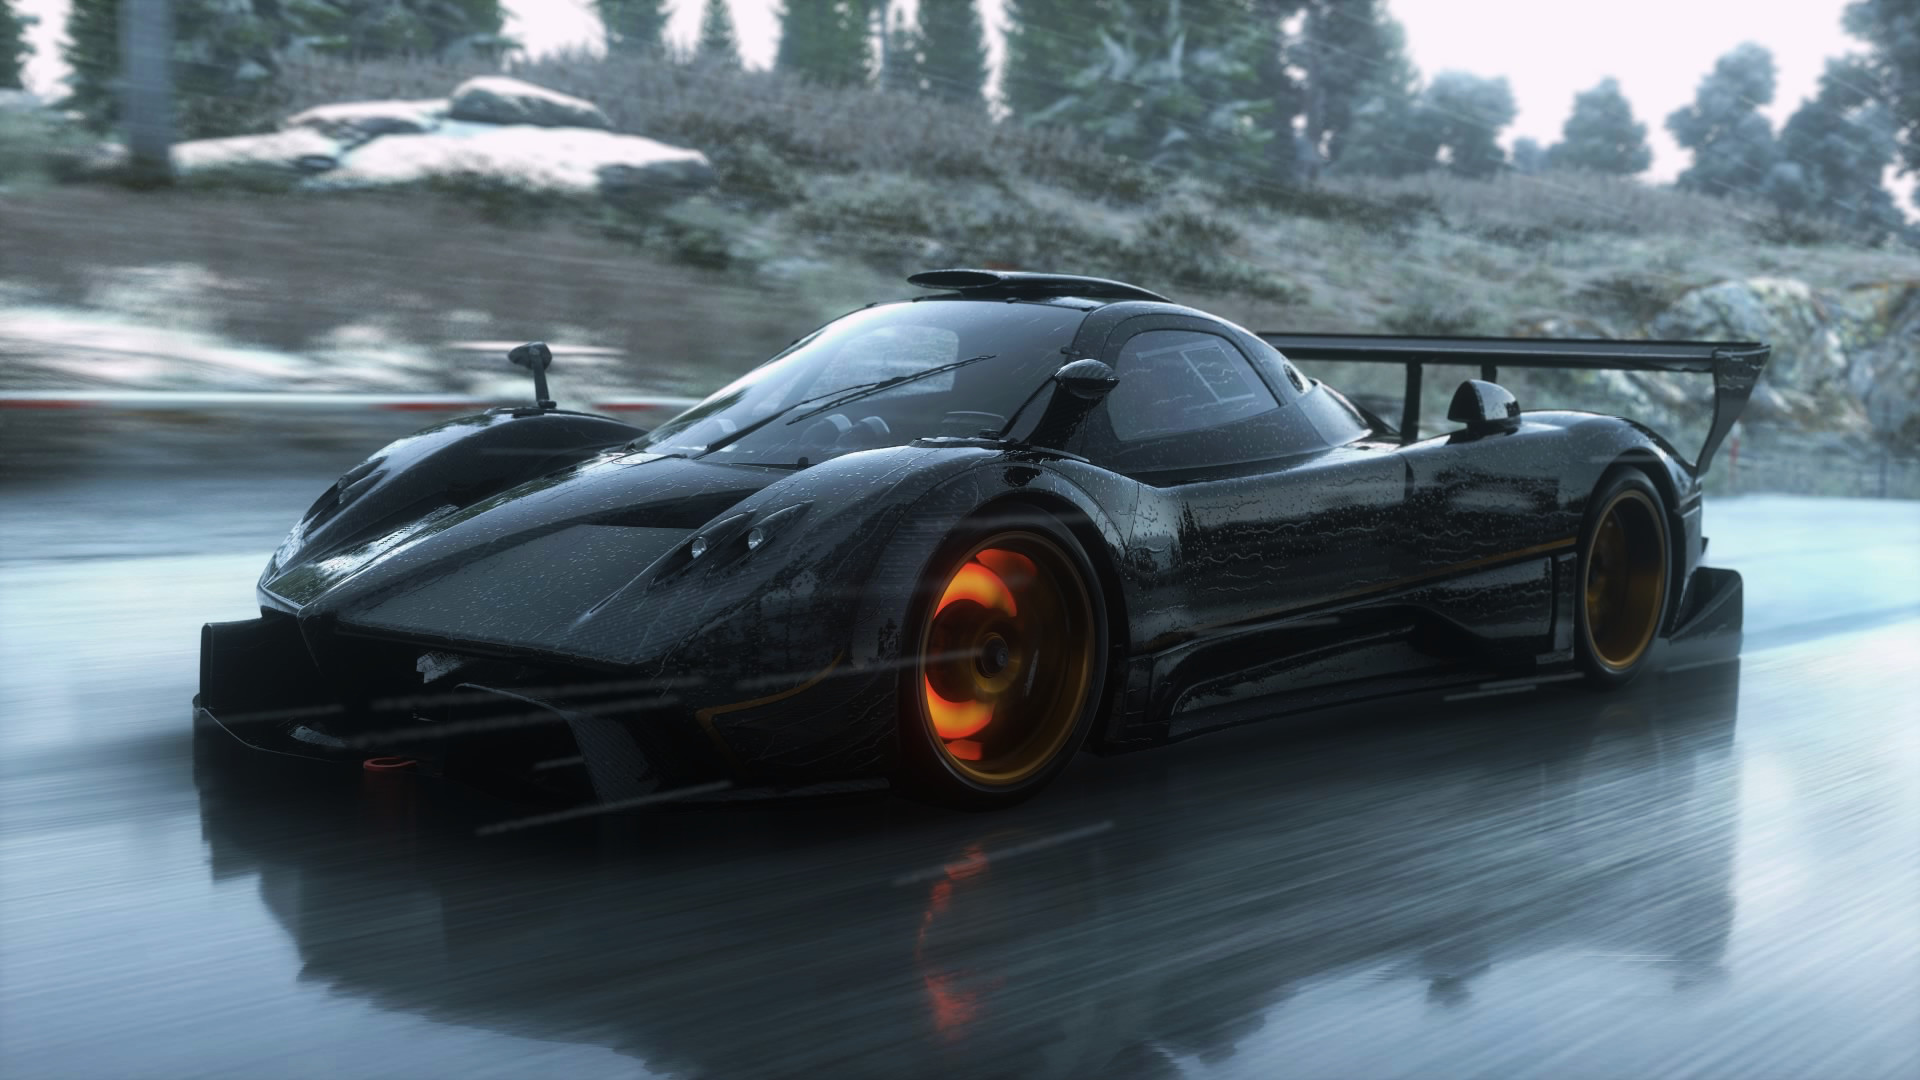 1920x1080 Pagani Zonda R in the rain.